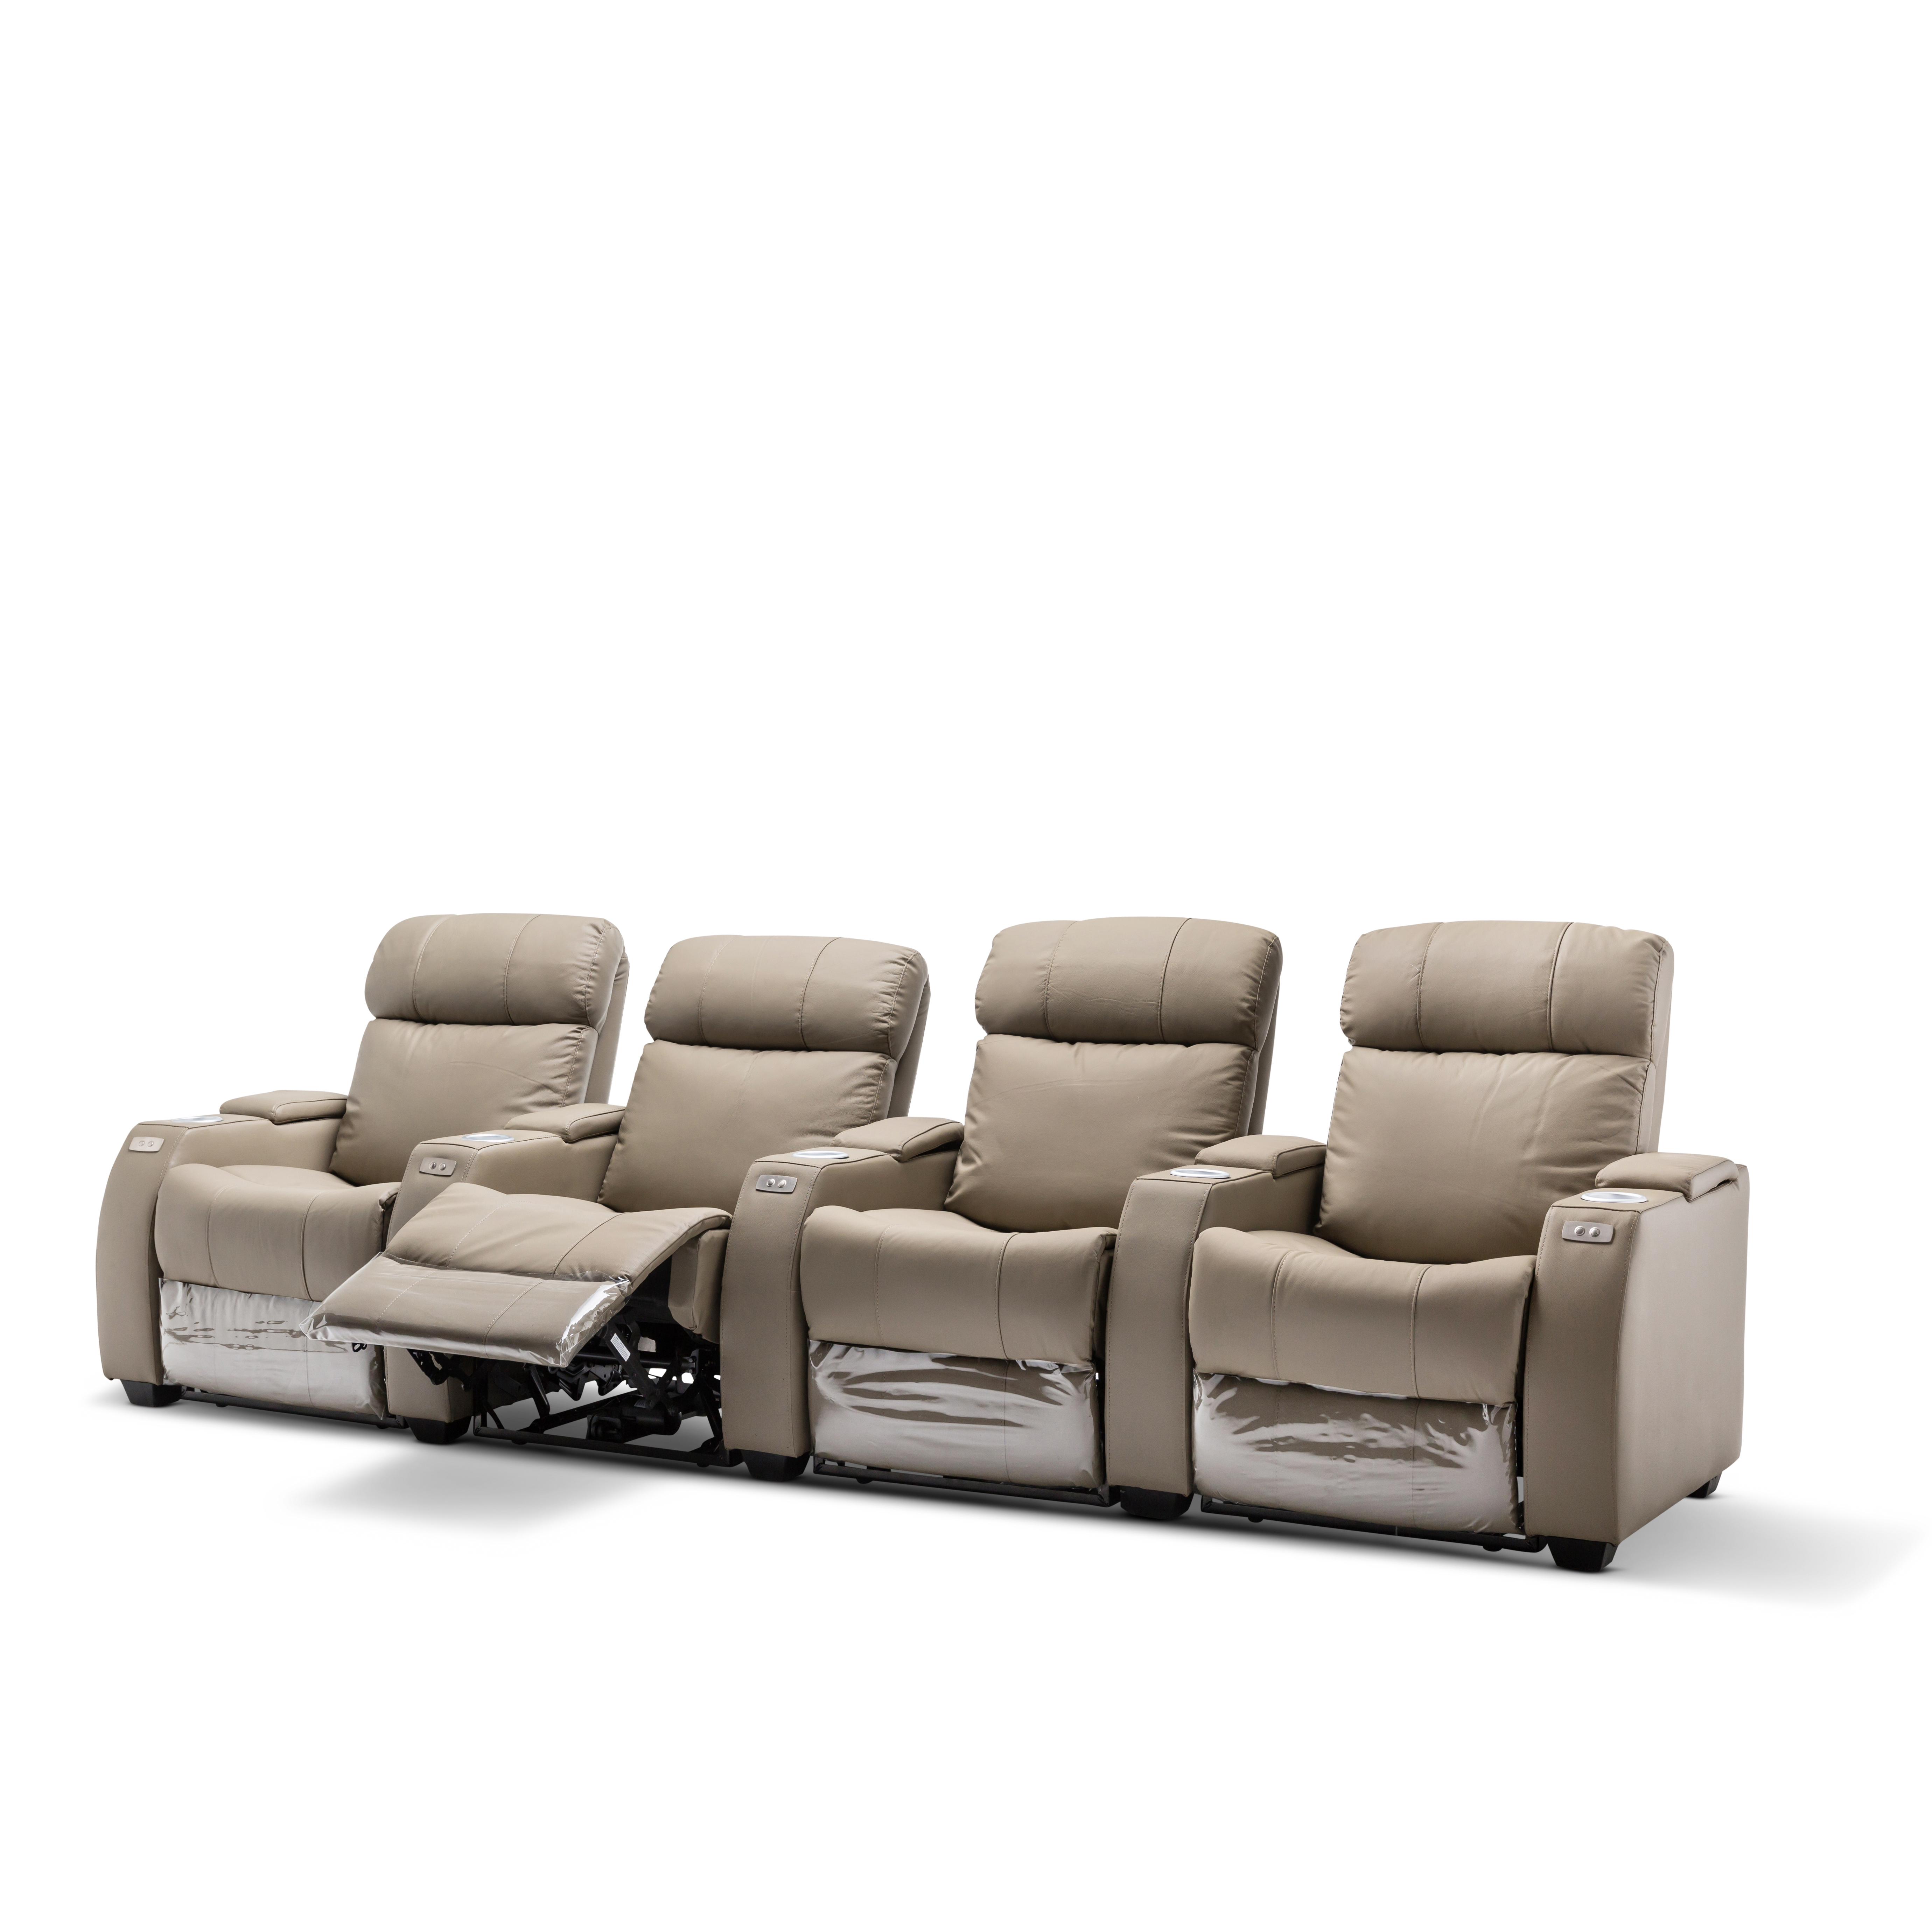 Grey Lounge Suite: Anna Brand New Grey/Black Leather Electric Home Threatre